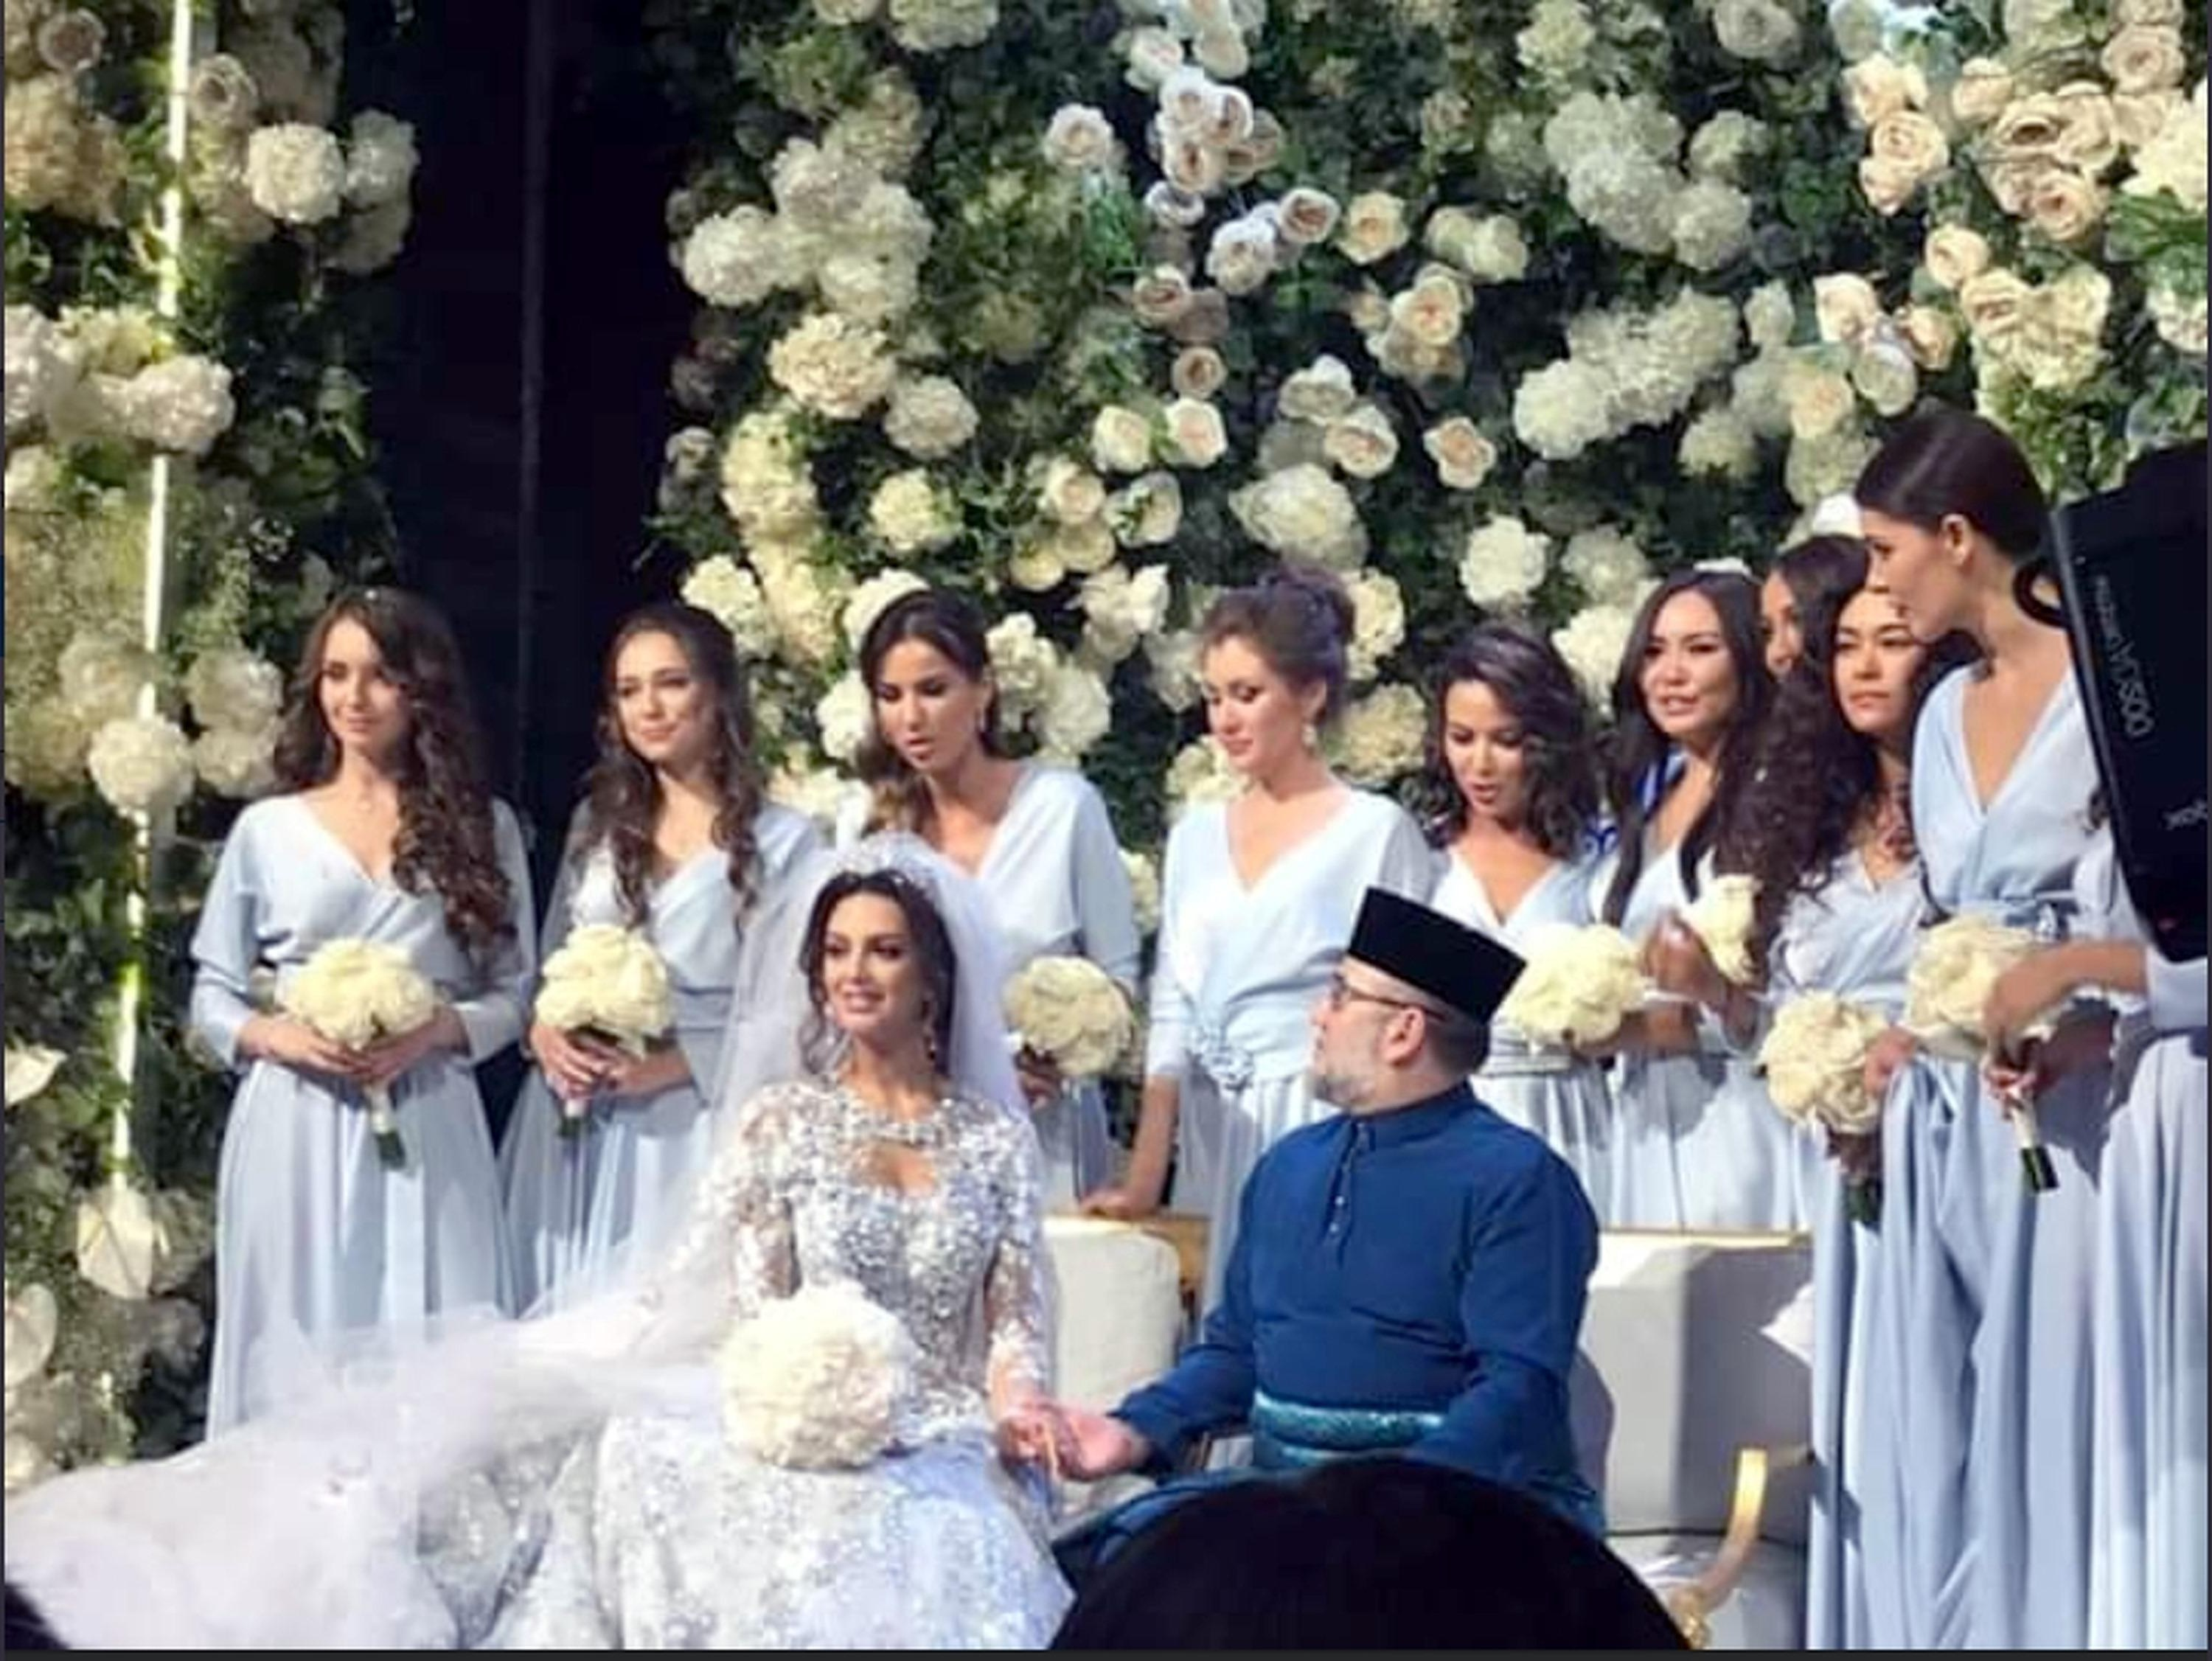 Design Ootd Bridesmaid Hijab J7do King Of Malaysia 49 Suddenly Quits Just Months after